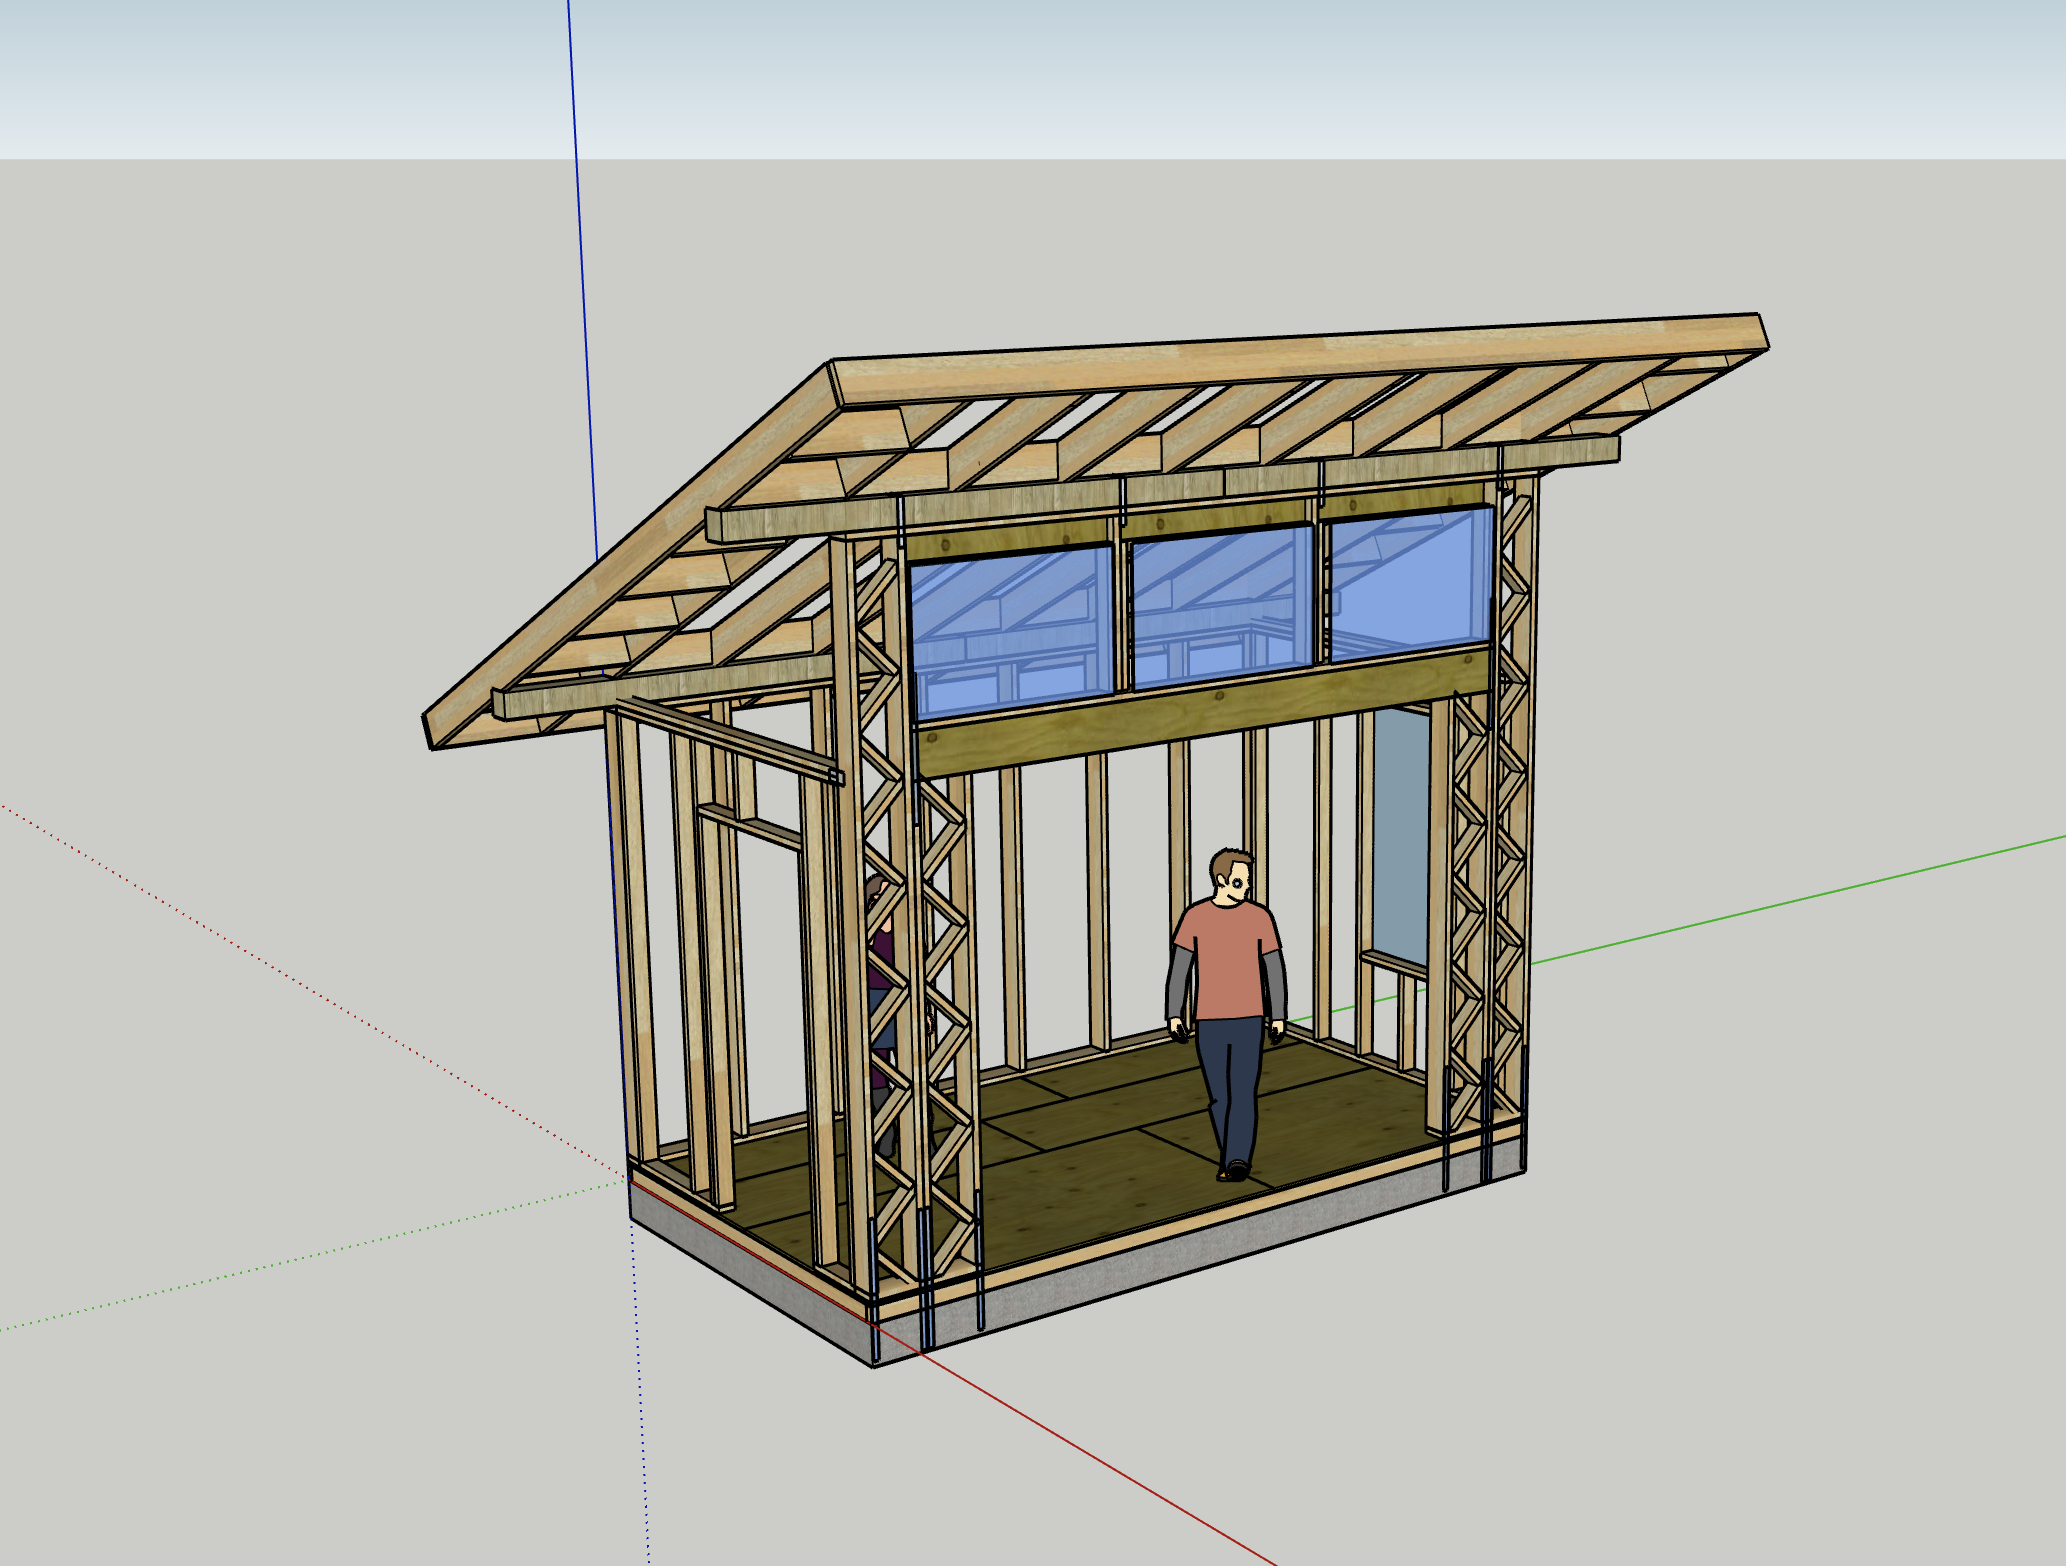 Shed / workshop framing design--is it too ambitious?-screen-shot-2020-04-25-3.32.52-pm.png